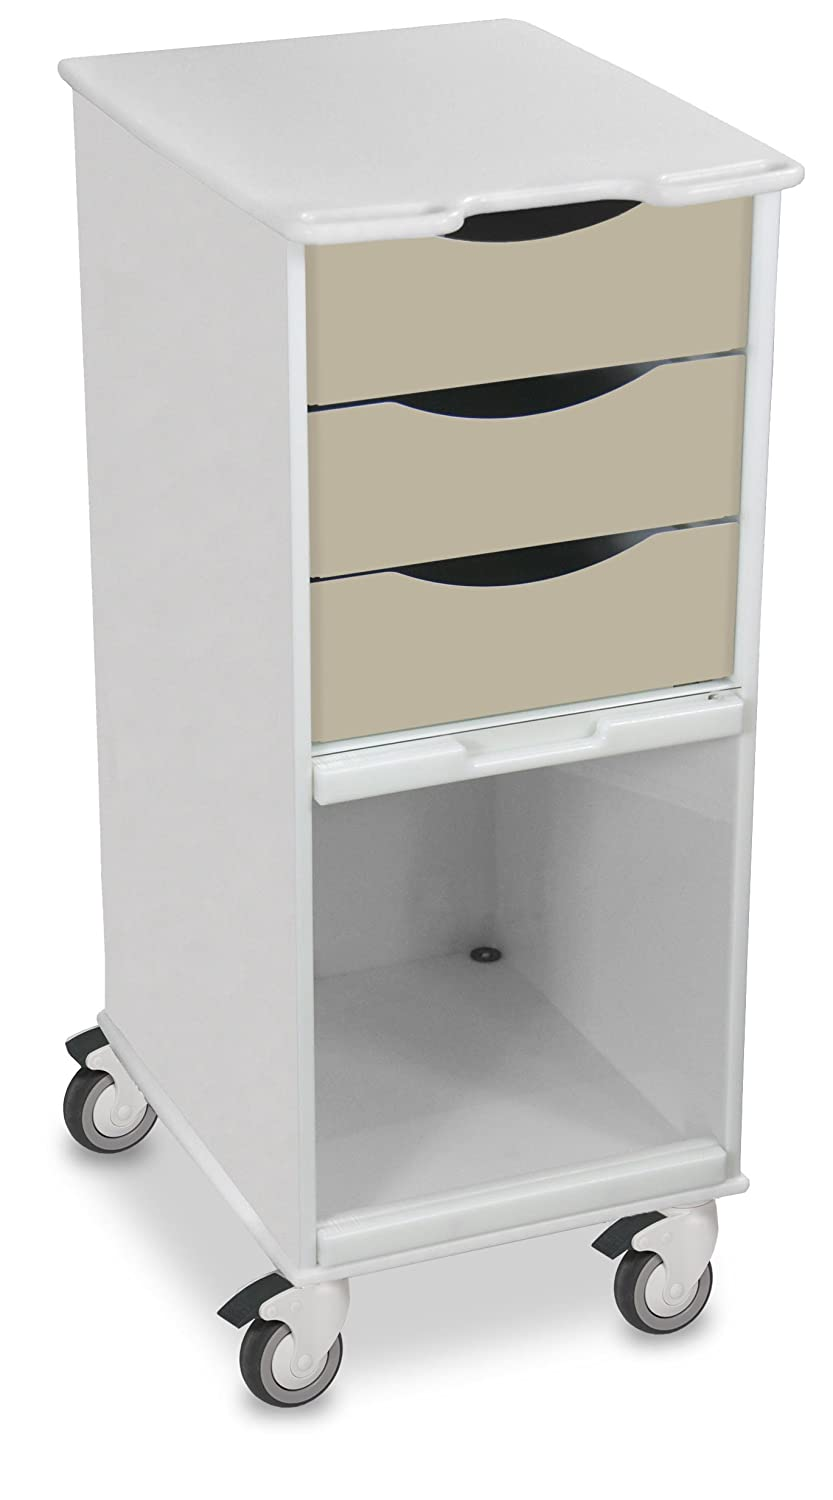 """TrippNT 51178 Polyethylene Core SP Space Saving Locking Lab Cart with Clear PETG Door, 15"""" Width, 35"""" Height x 19"""" Depth, Almond Beige and White"""